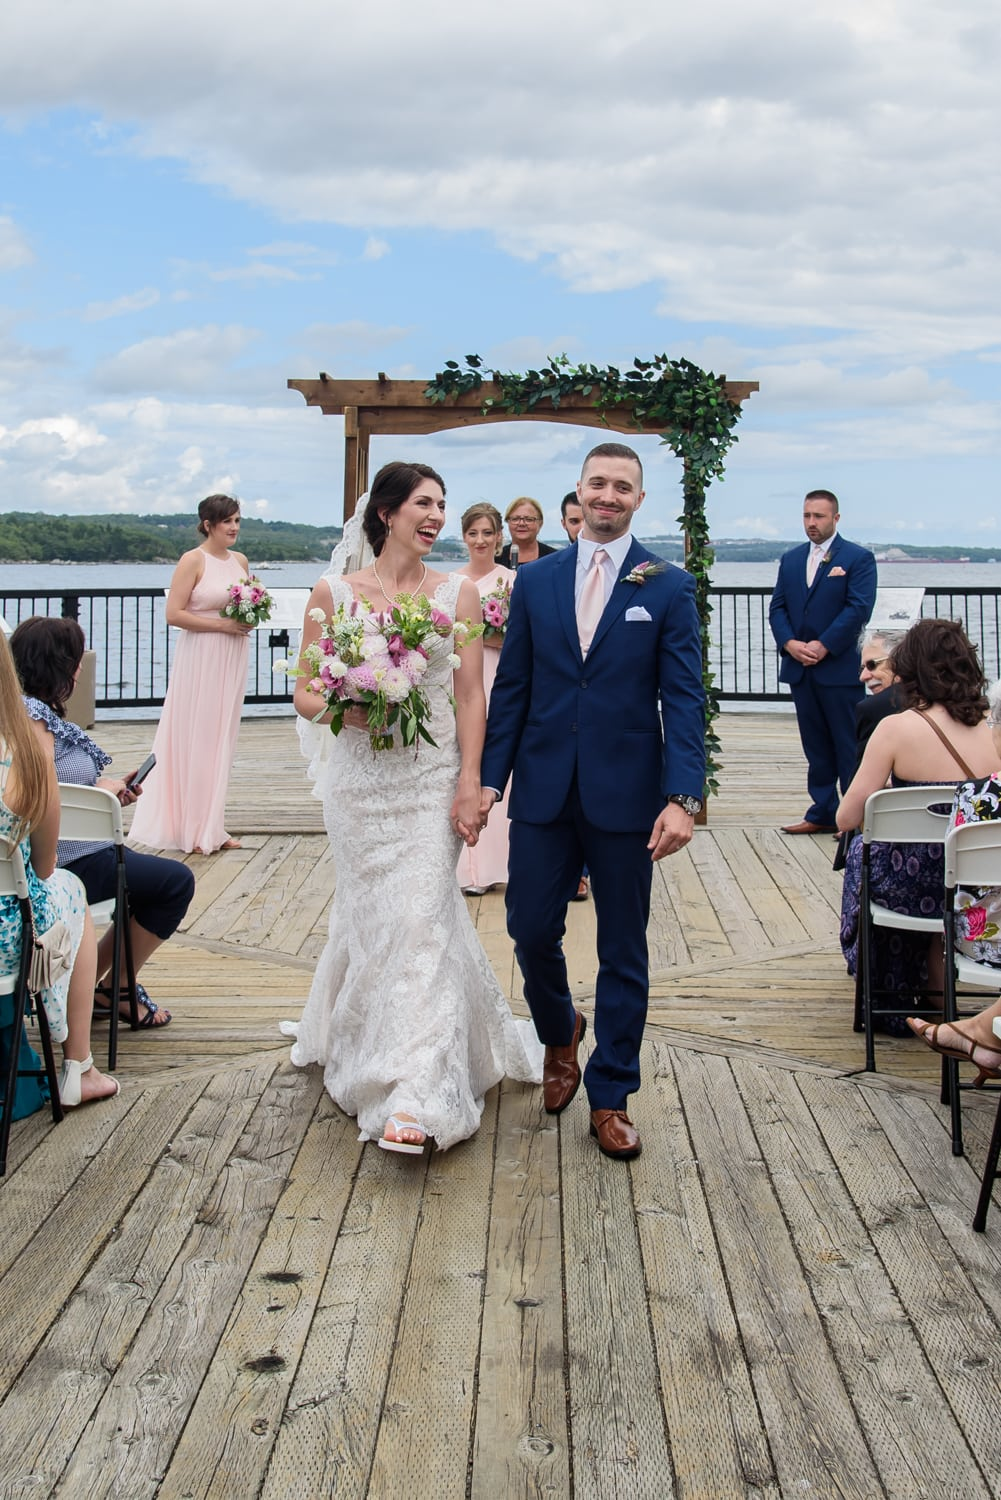 halifax ns wedding photographer, halifax wedding photographers, halifax engagement photographer, engaged, sandra adamson studios, dewolfe park, dewolfe park weddings, bride, groom, wedding ceremony, first kiss, first look, bridesmaids, groomsmen, wedding recessional